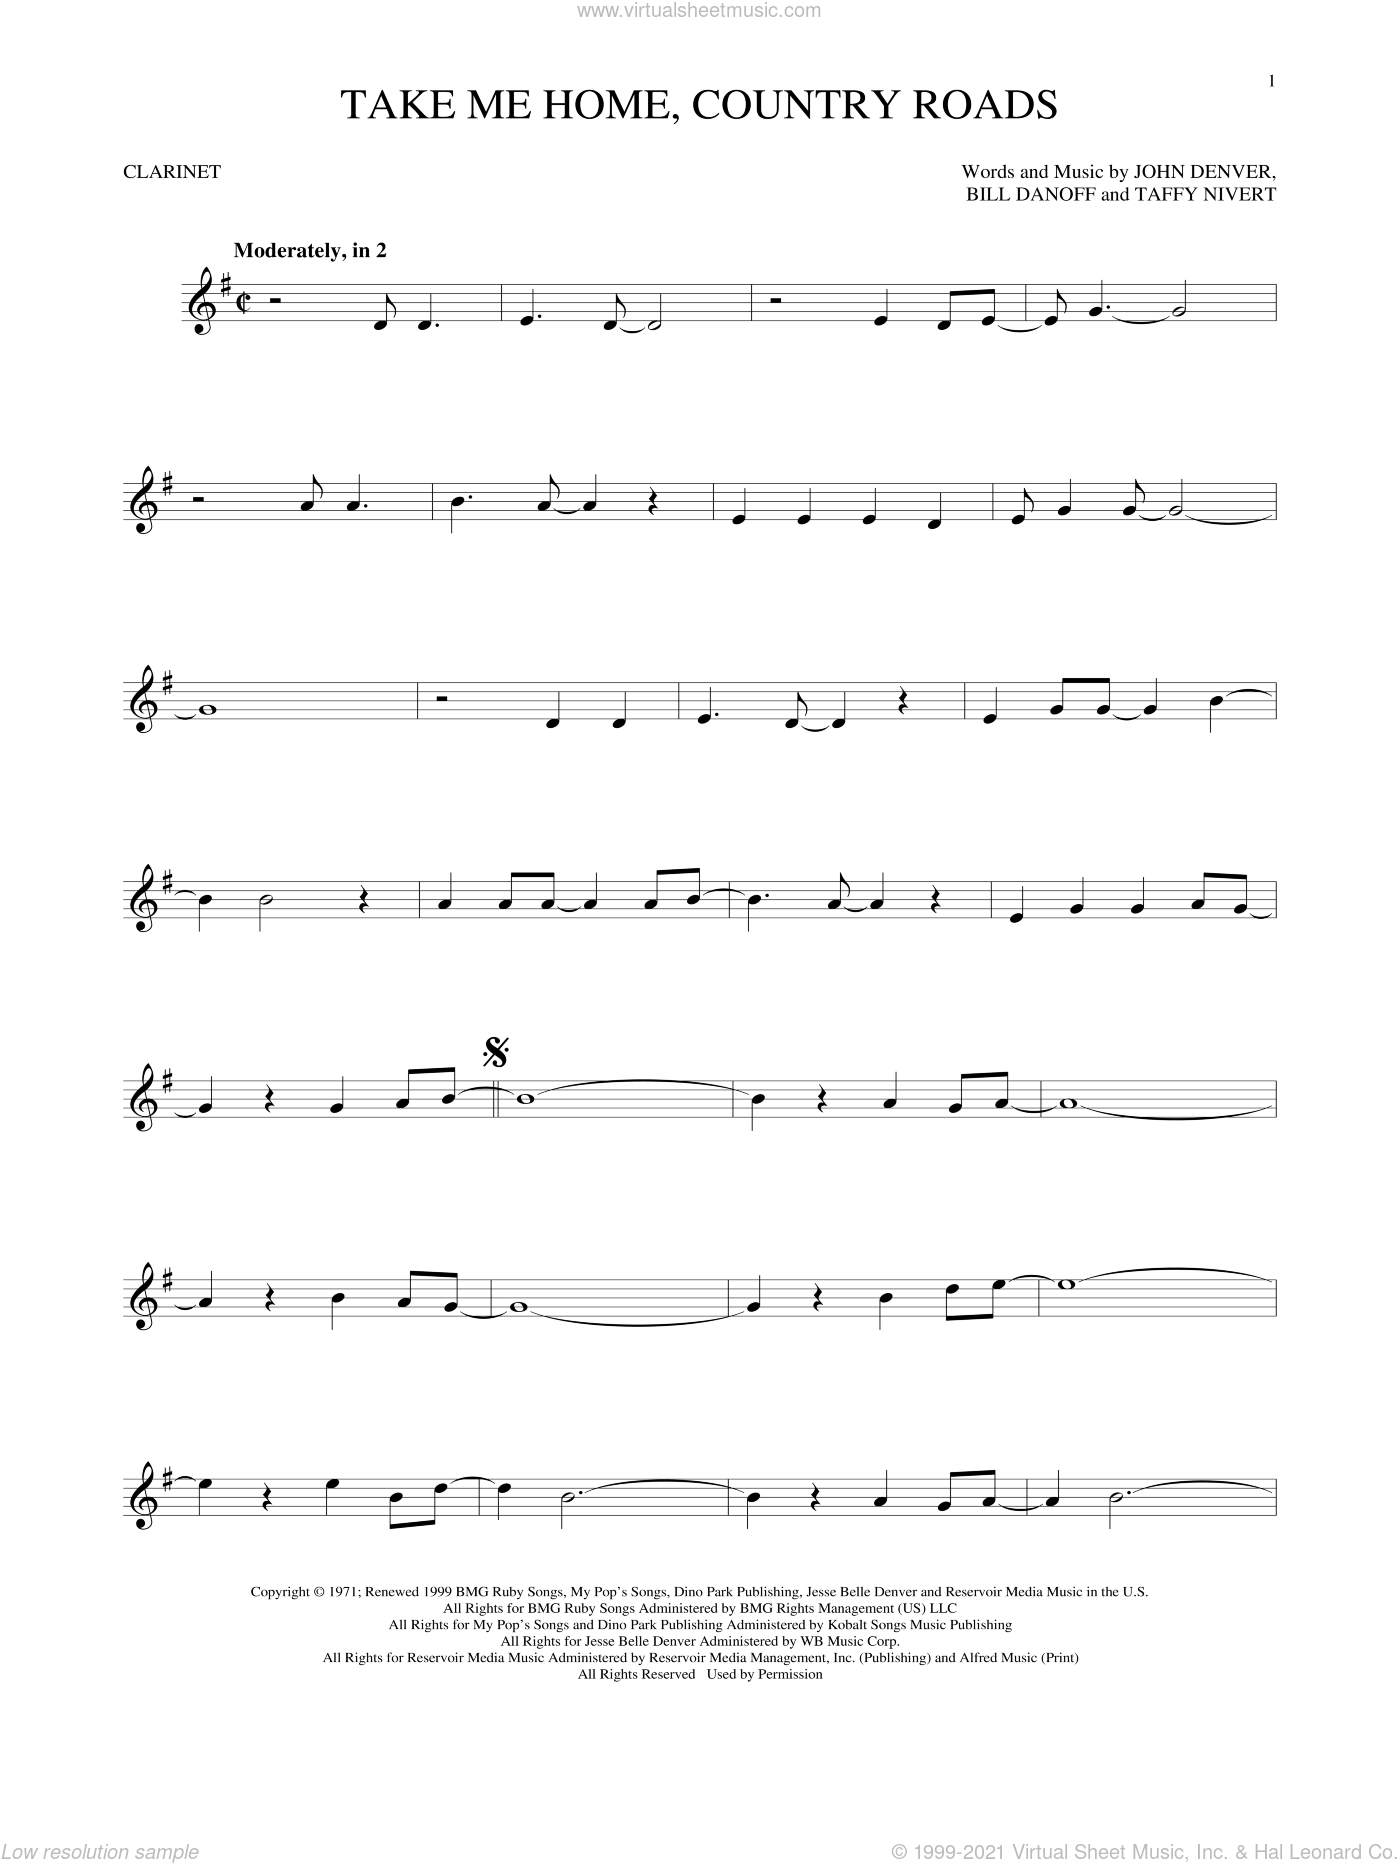 Take Me Home, Country Roads sheet music for clarinet solo by John Denver, Bill Danoff and Taffy Nivert, intermediate skill level